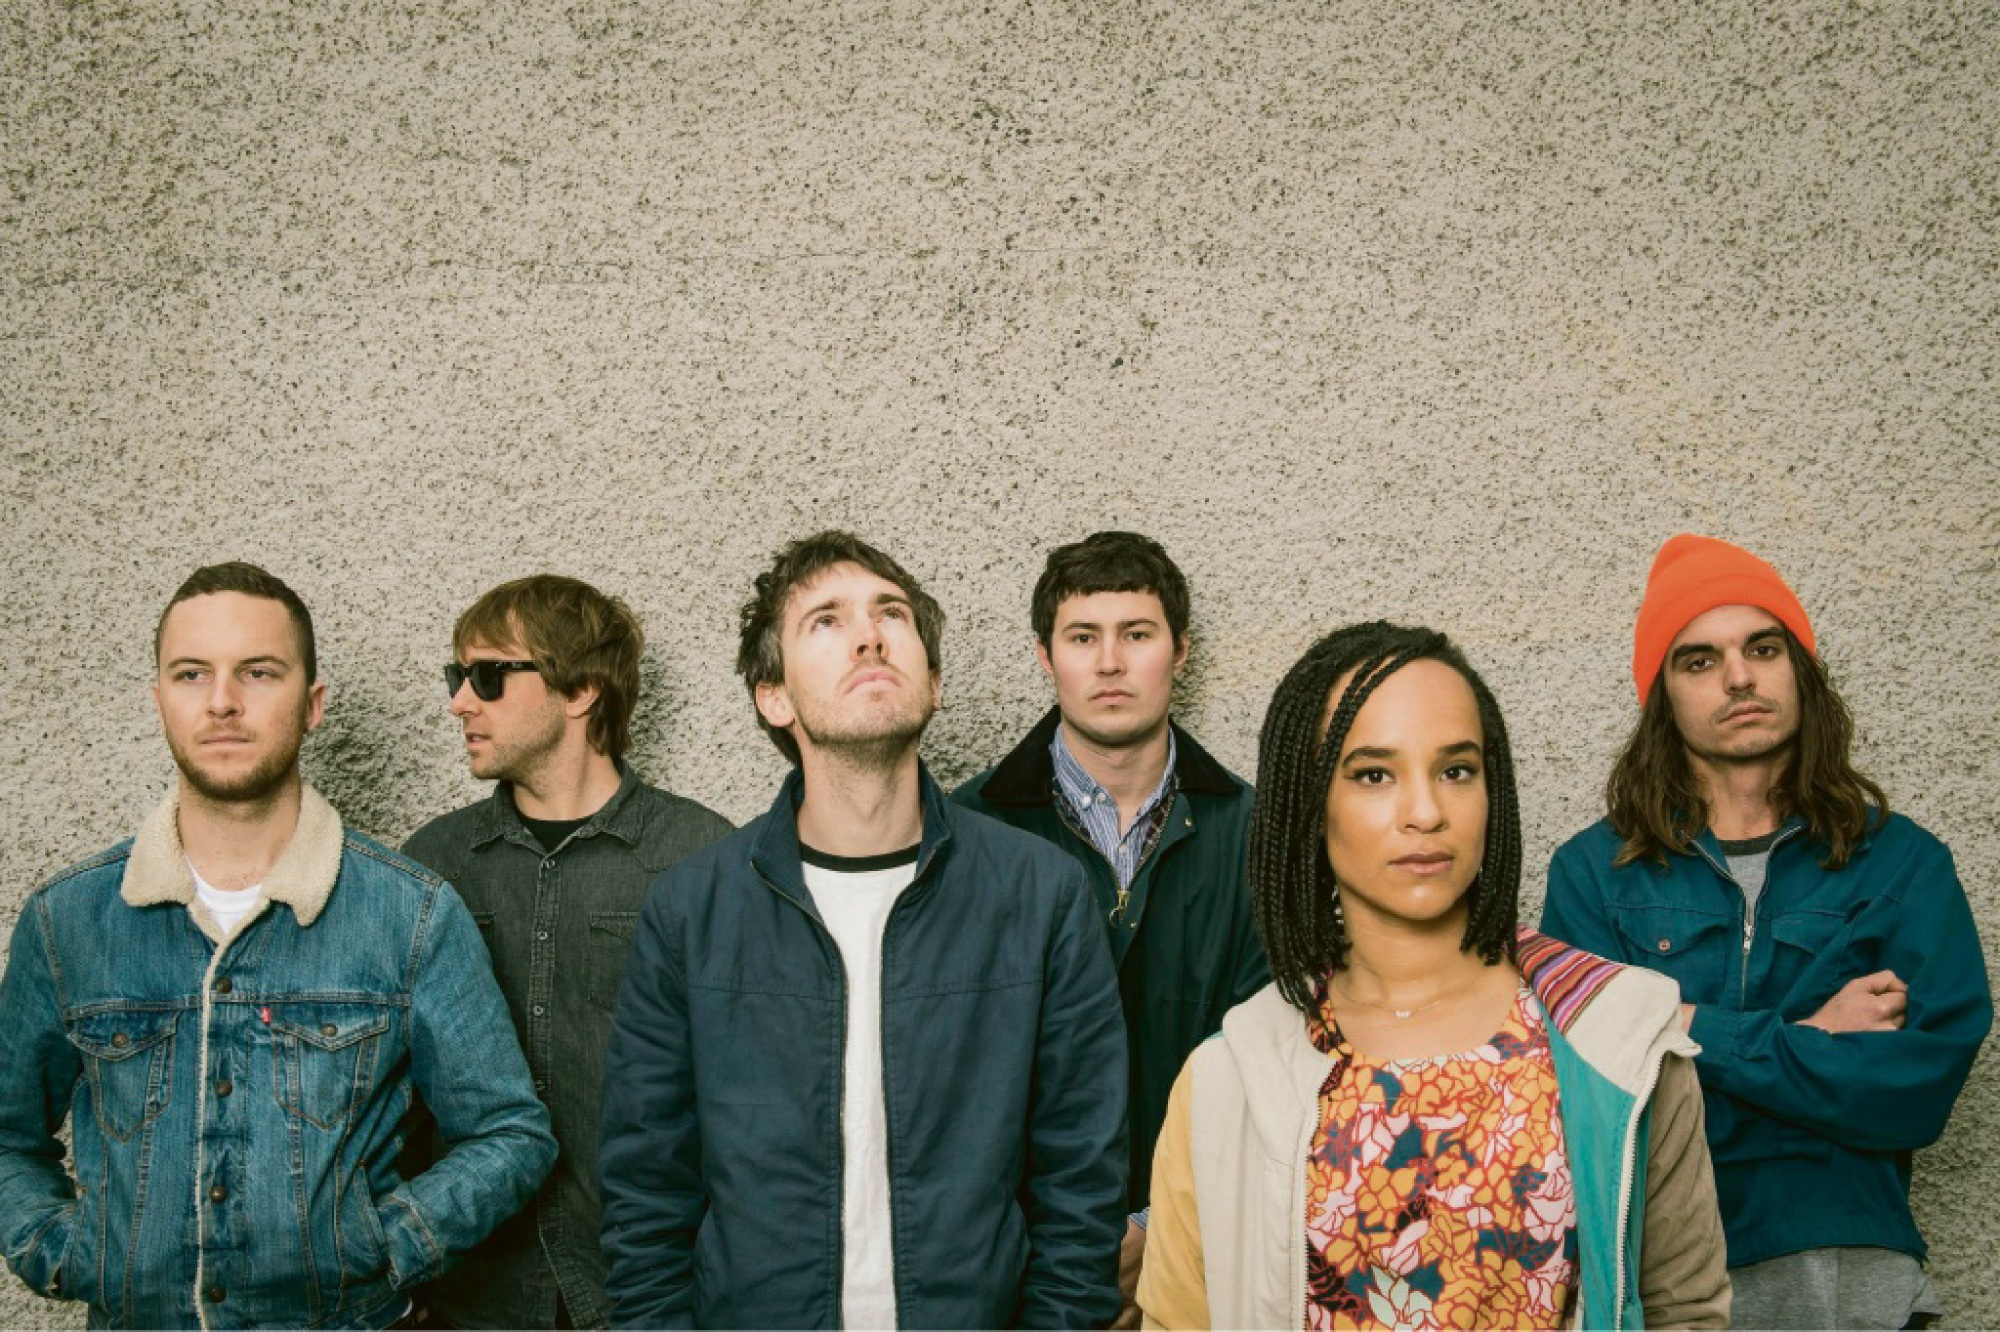 The members of Melbourne-based band Saskwatch.